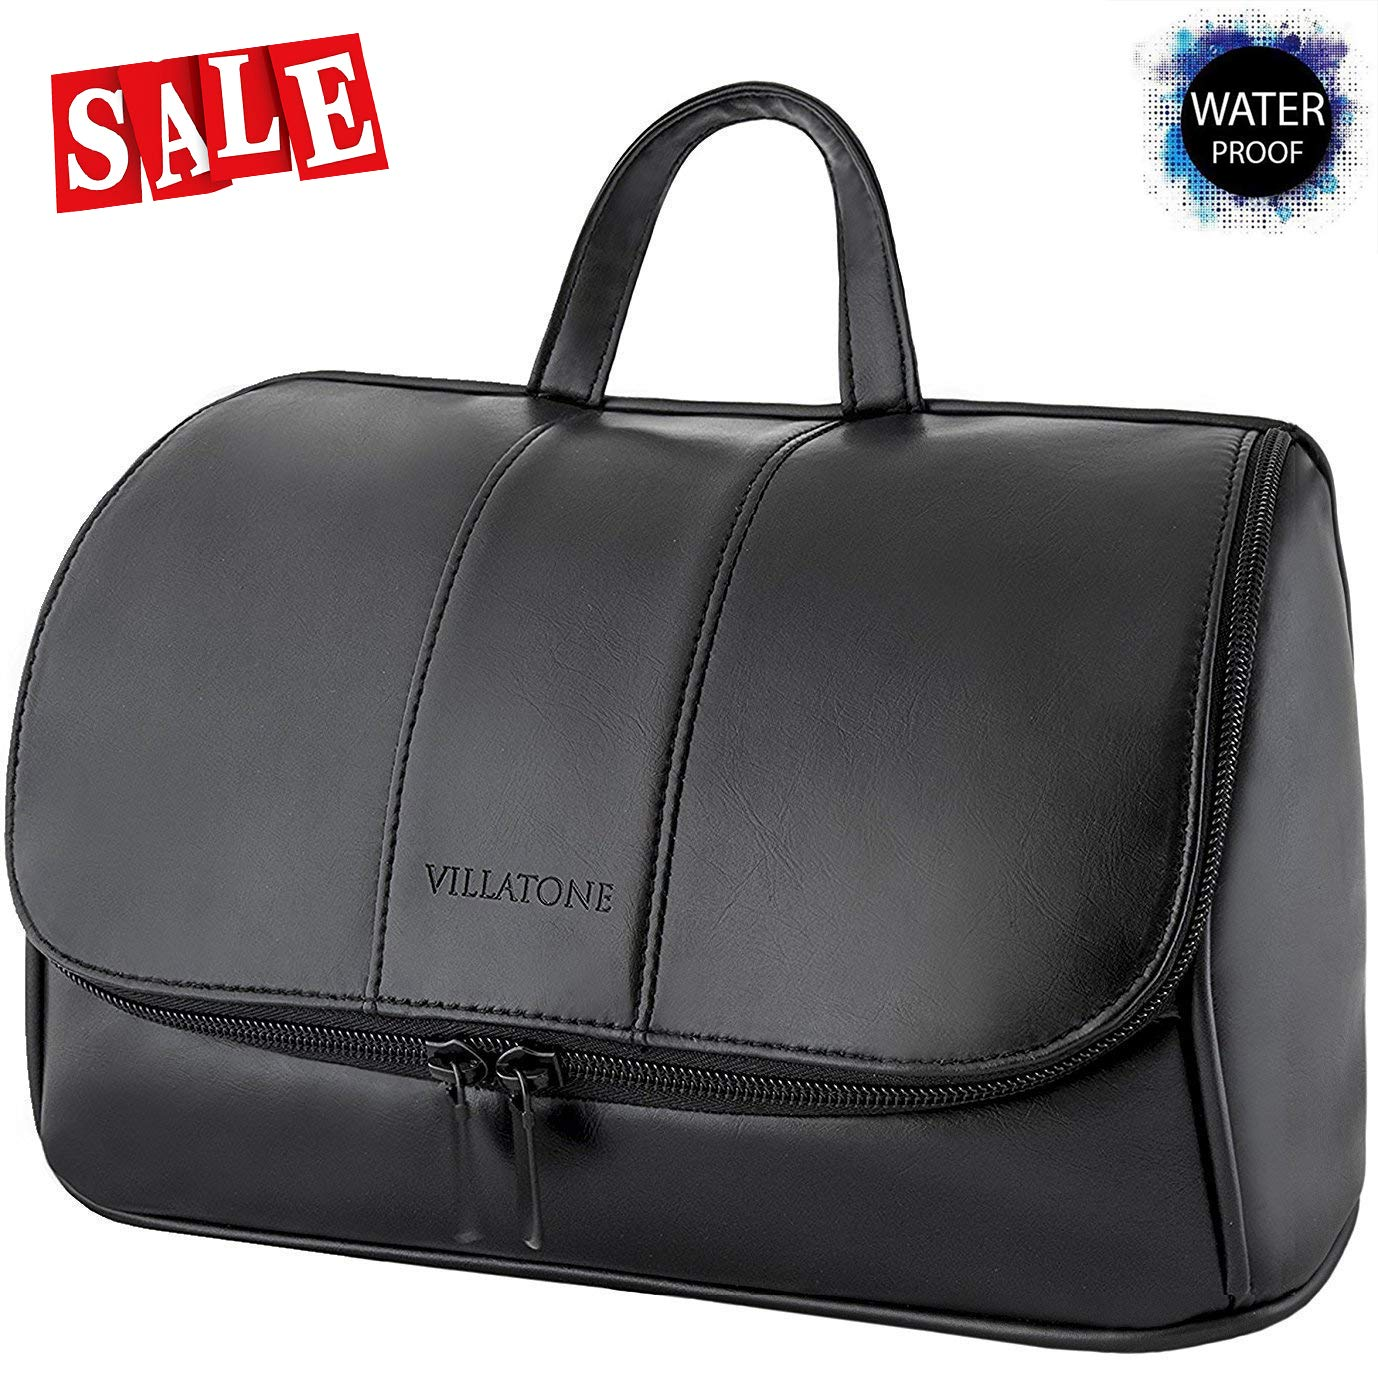 VILLATONE Leather Toiletry Bag for Men - Black Large Hanging Travel Organizer, Shave Dopp Kit & Portable Bathroom Cosmetic Case for Man (with Premium Gift Box)